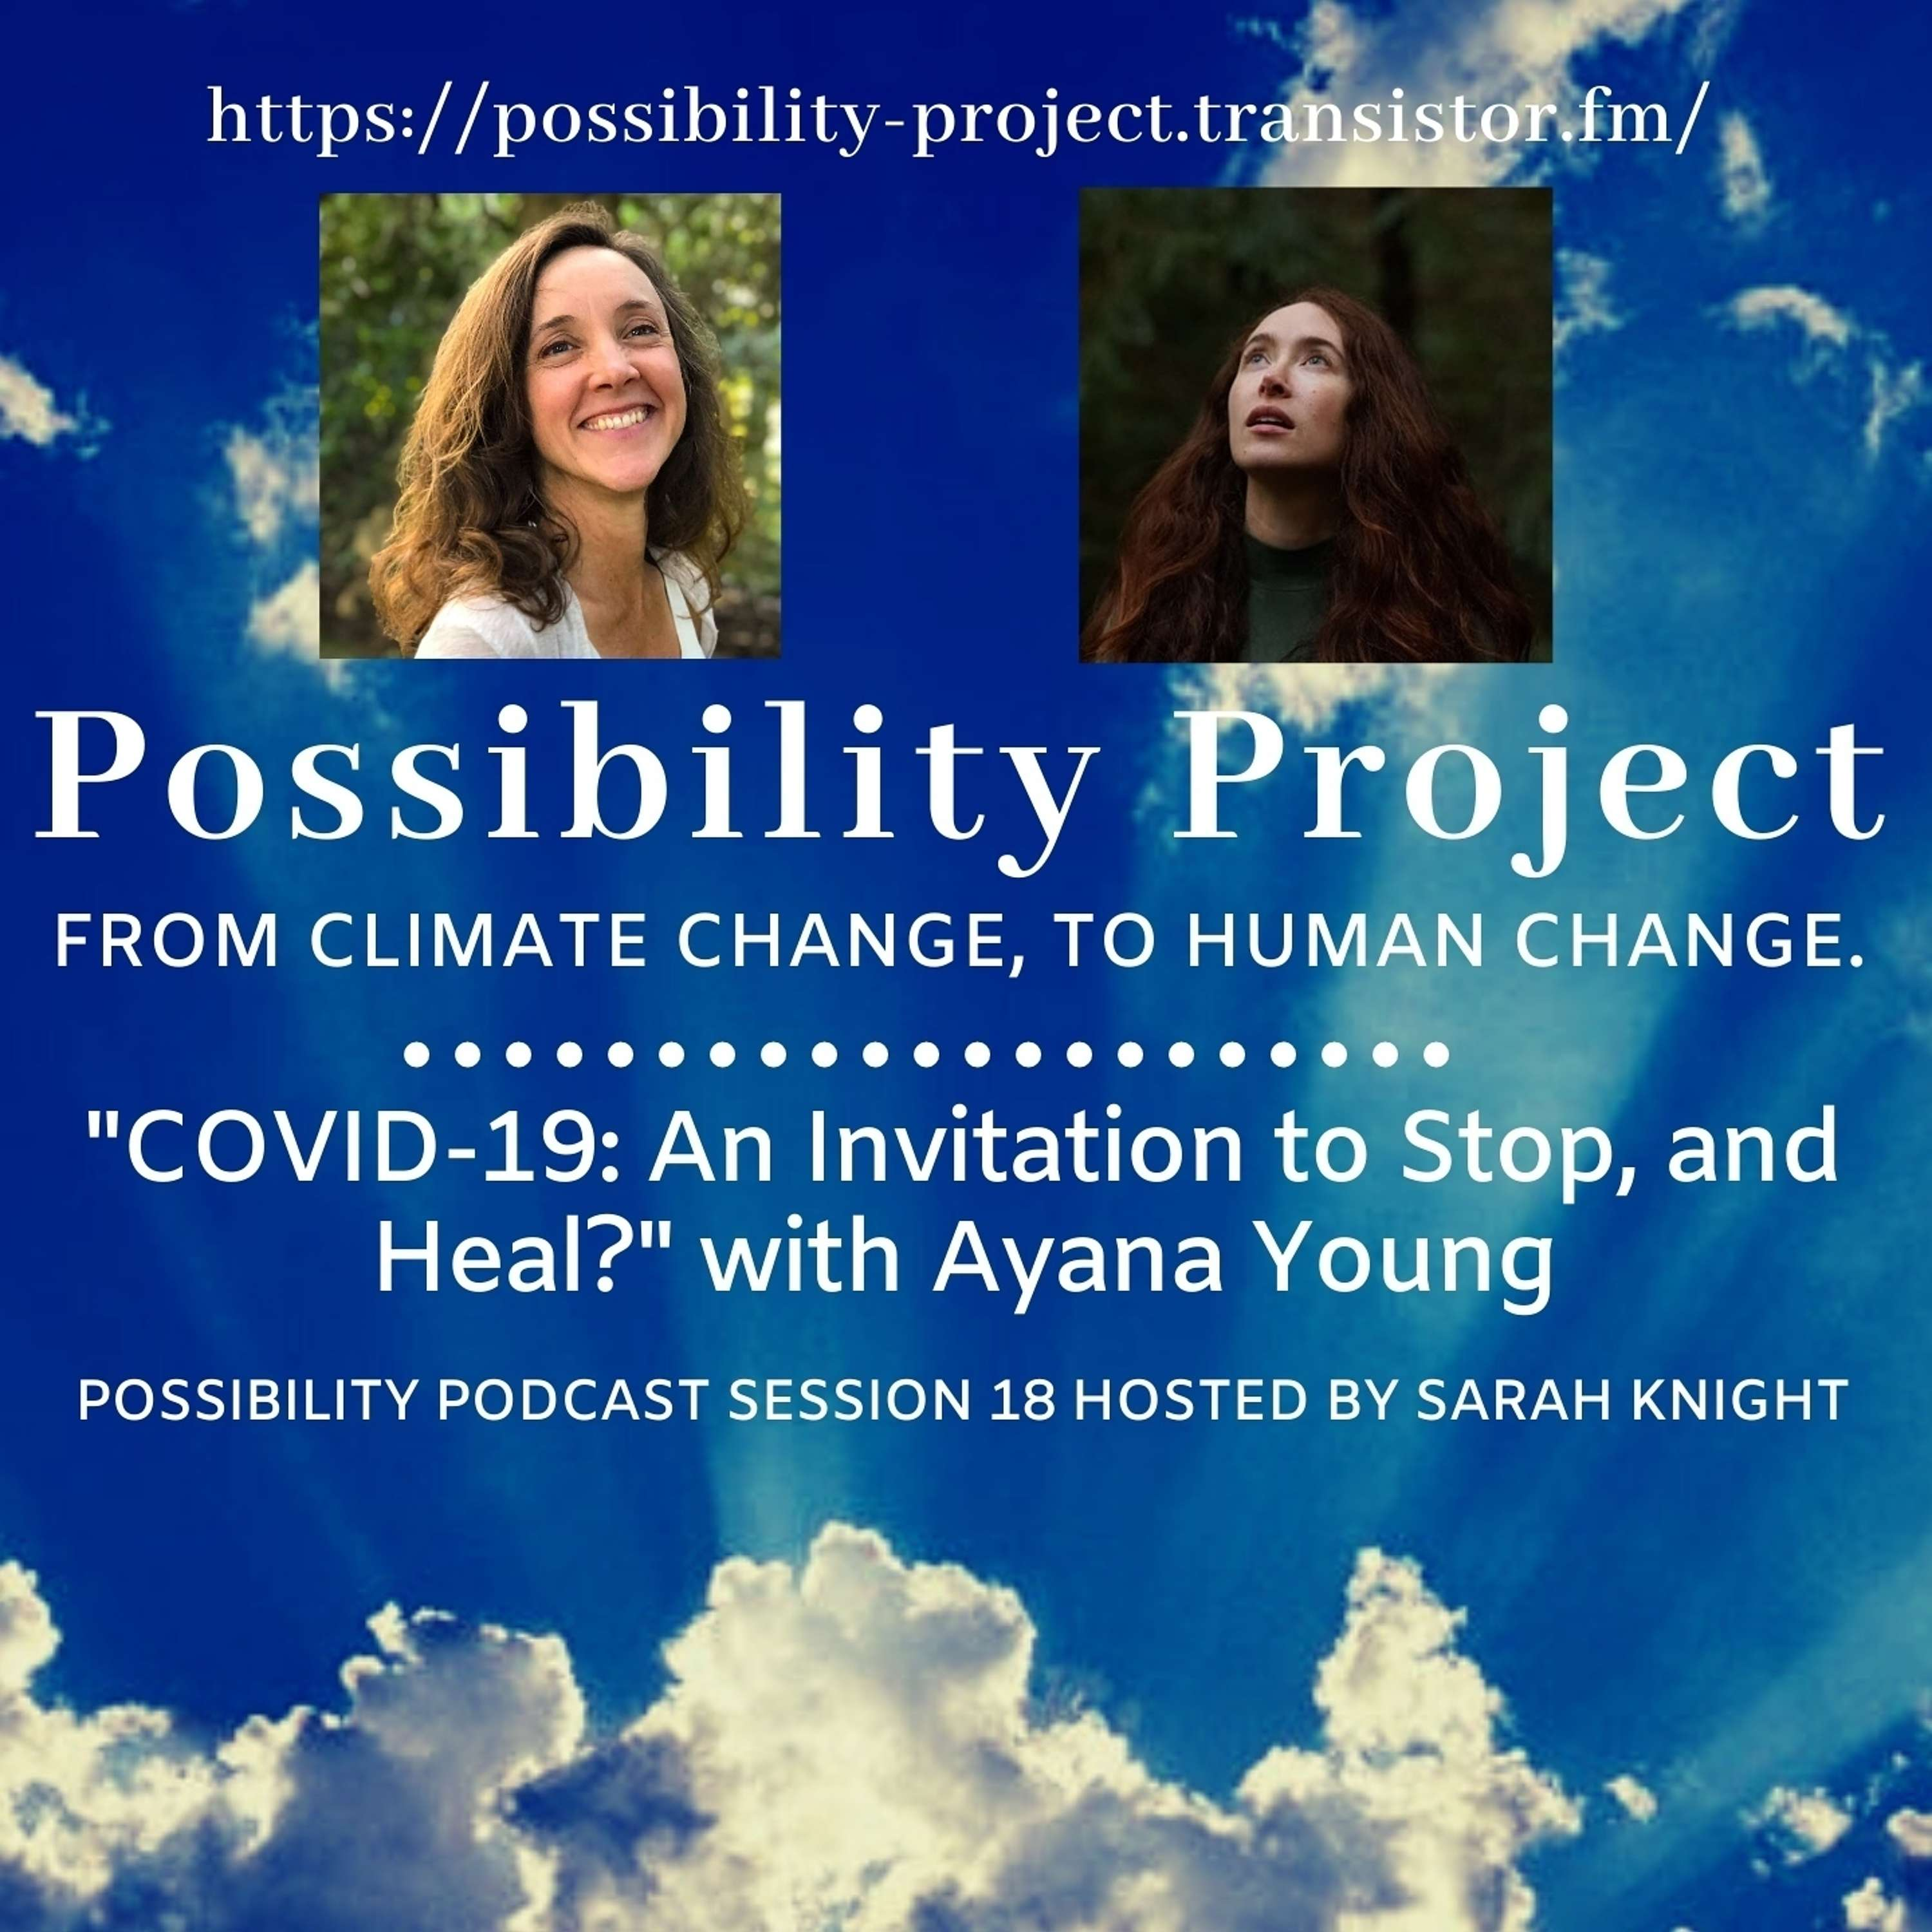 COVID-19: A Chance to Stop, and Heal? Possibility Podcast Session 18